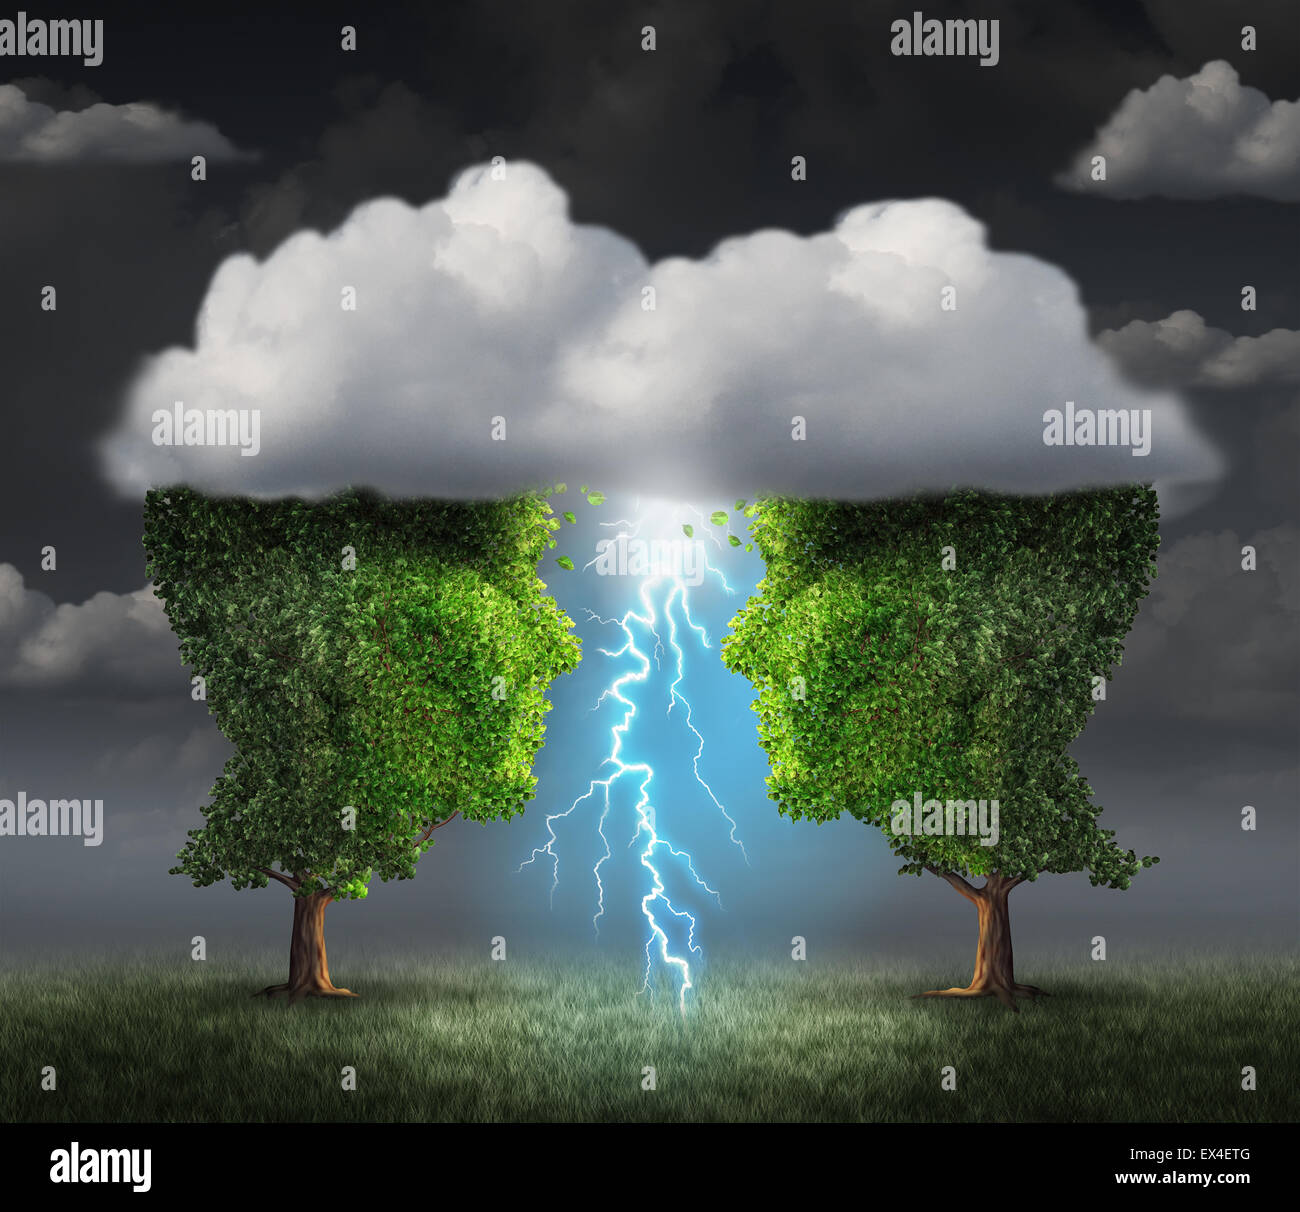 Business spark idea concept as two trees shaped as a head under a storm cloud creating a thunderbolt of lightning - Stock Image